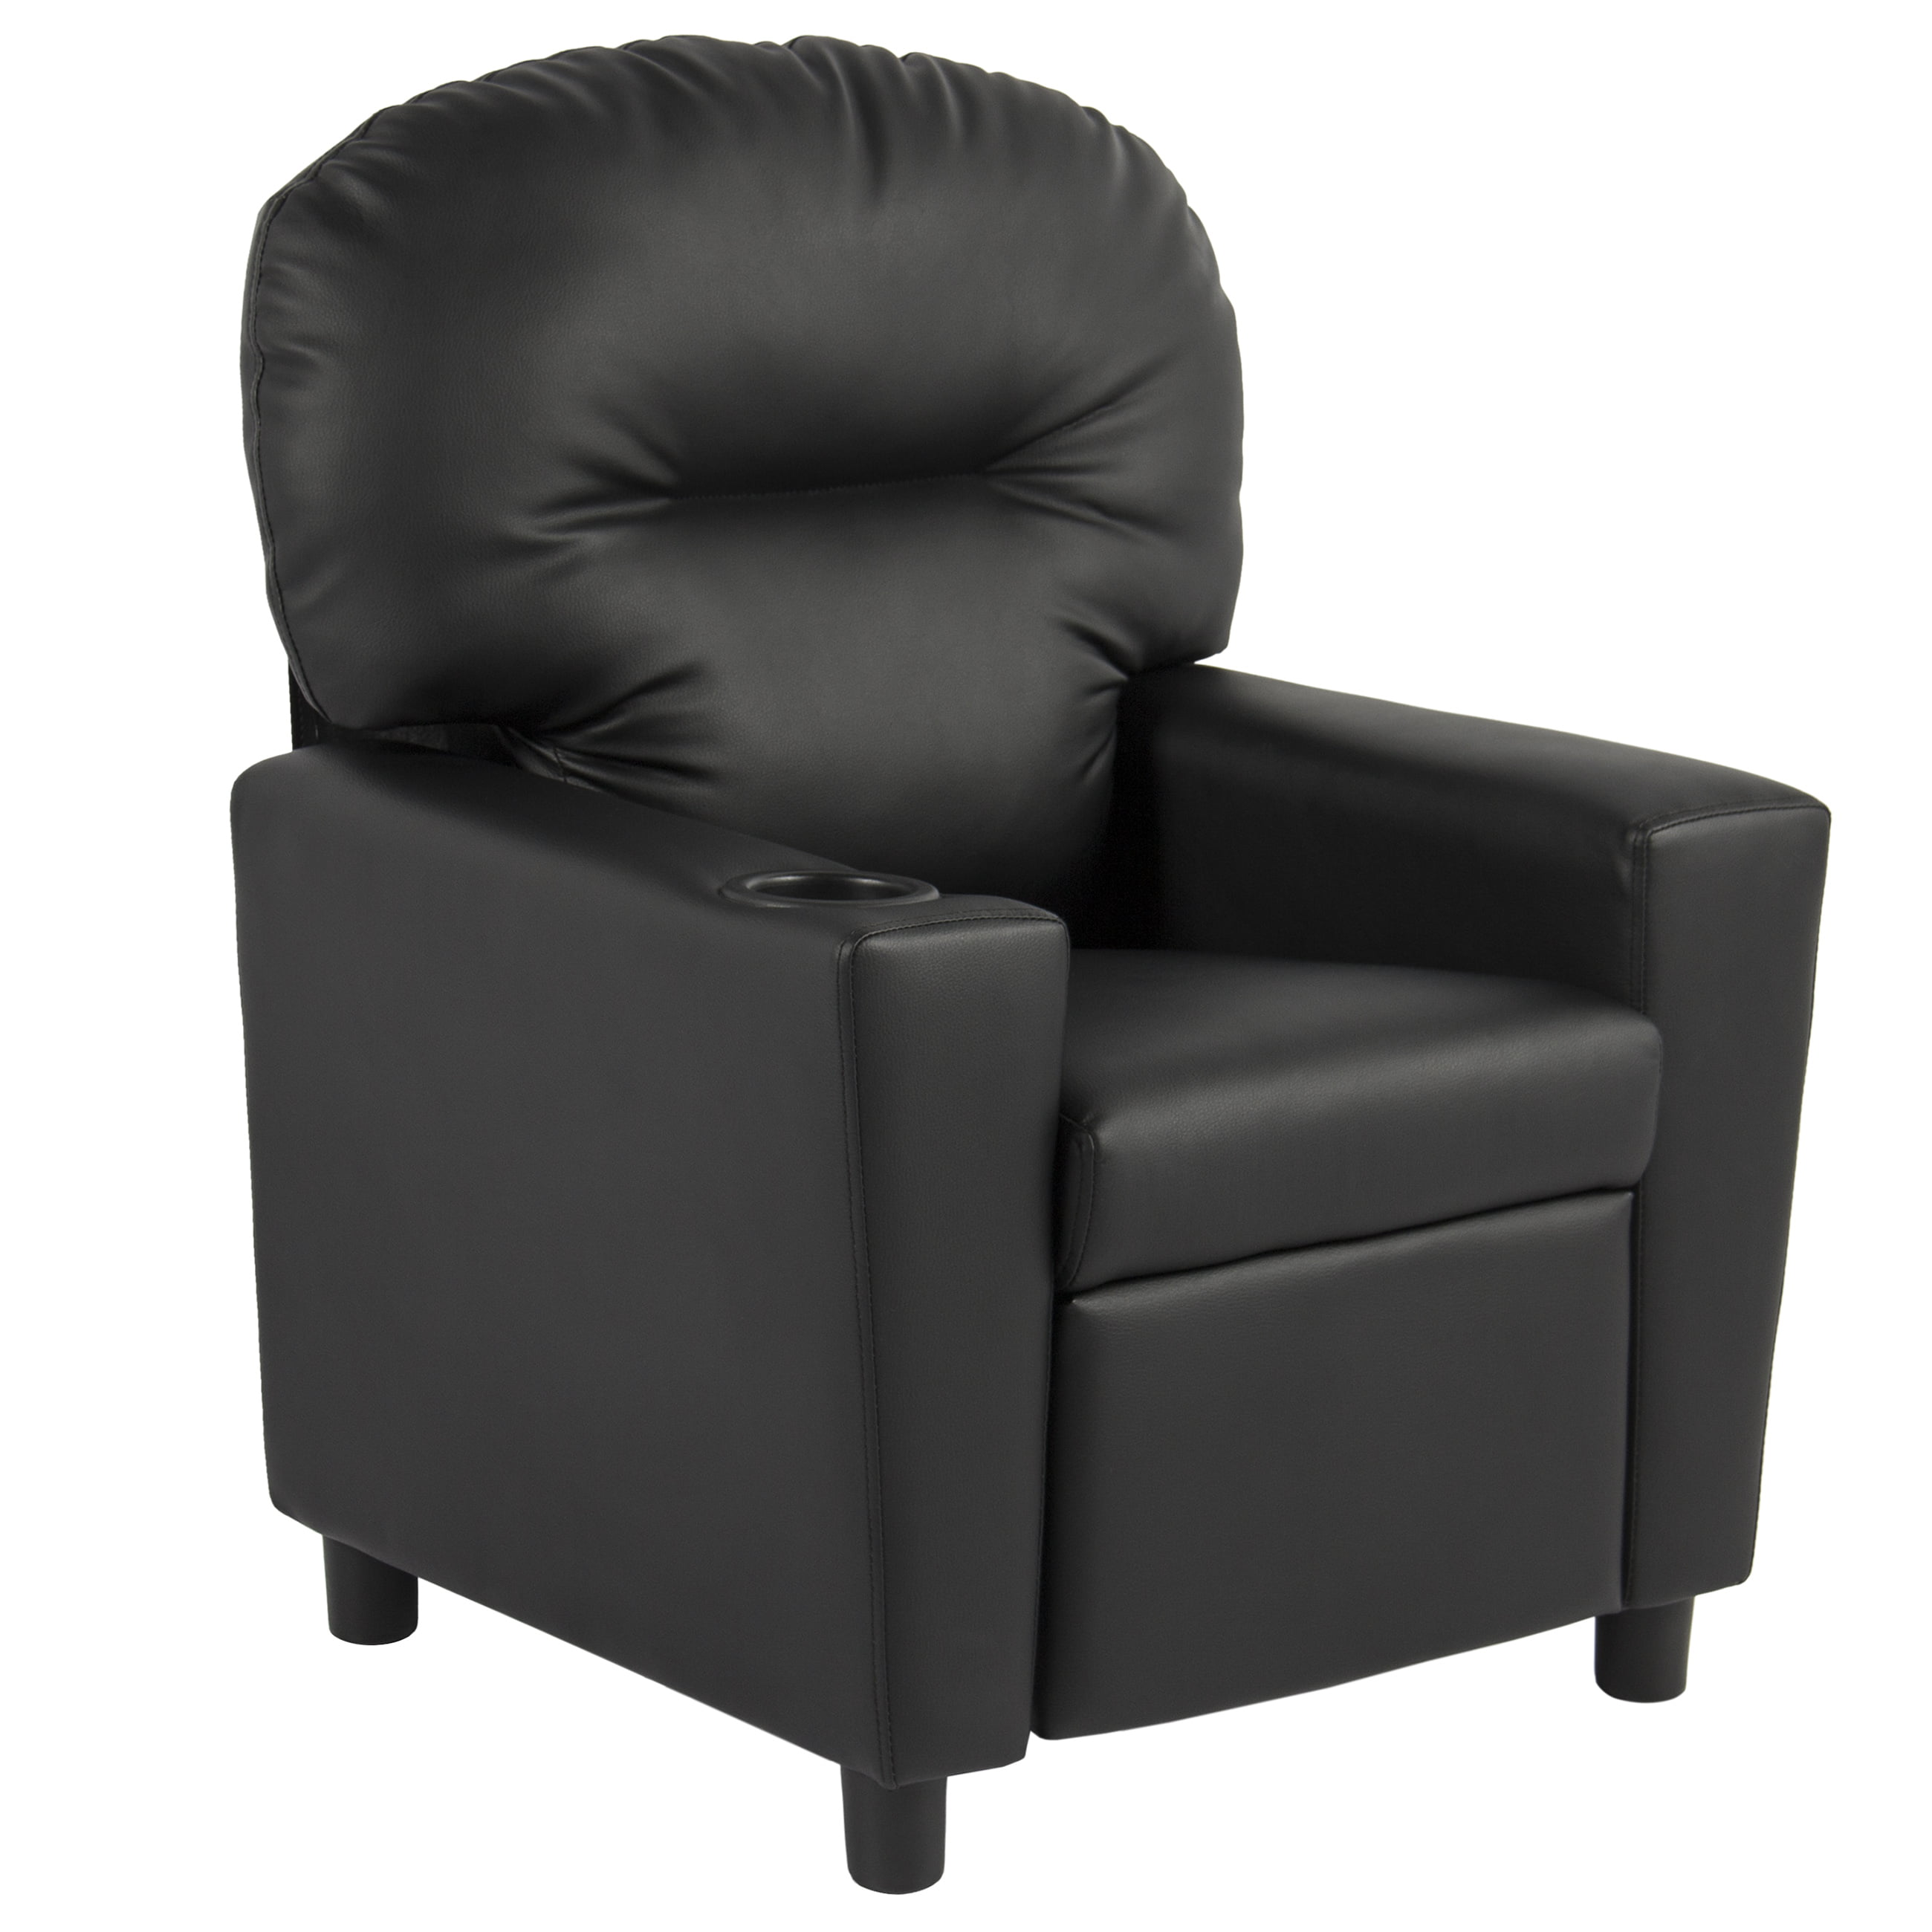 Best Choice Products Black Leather Kids Recliner Chair with Cup